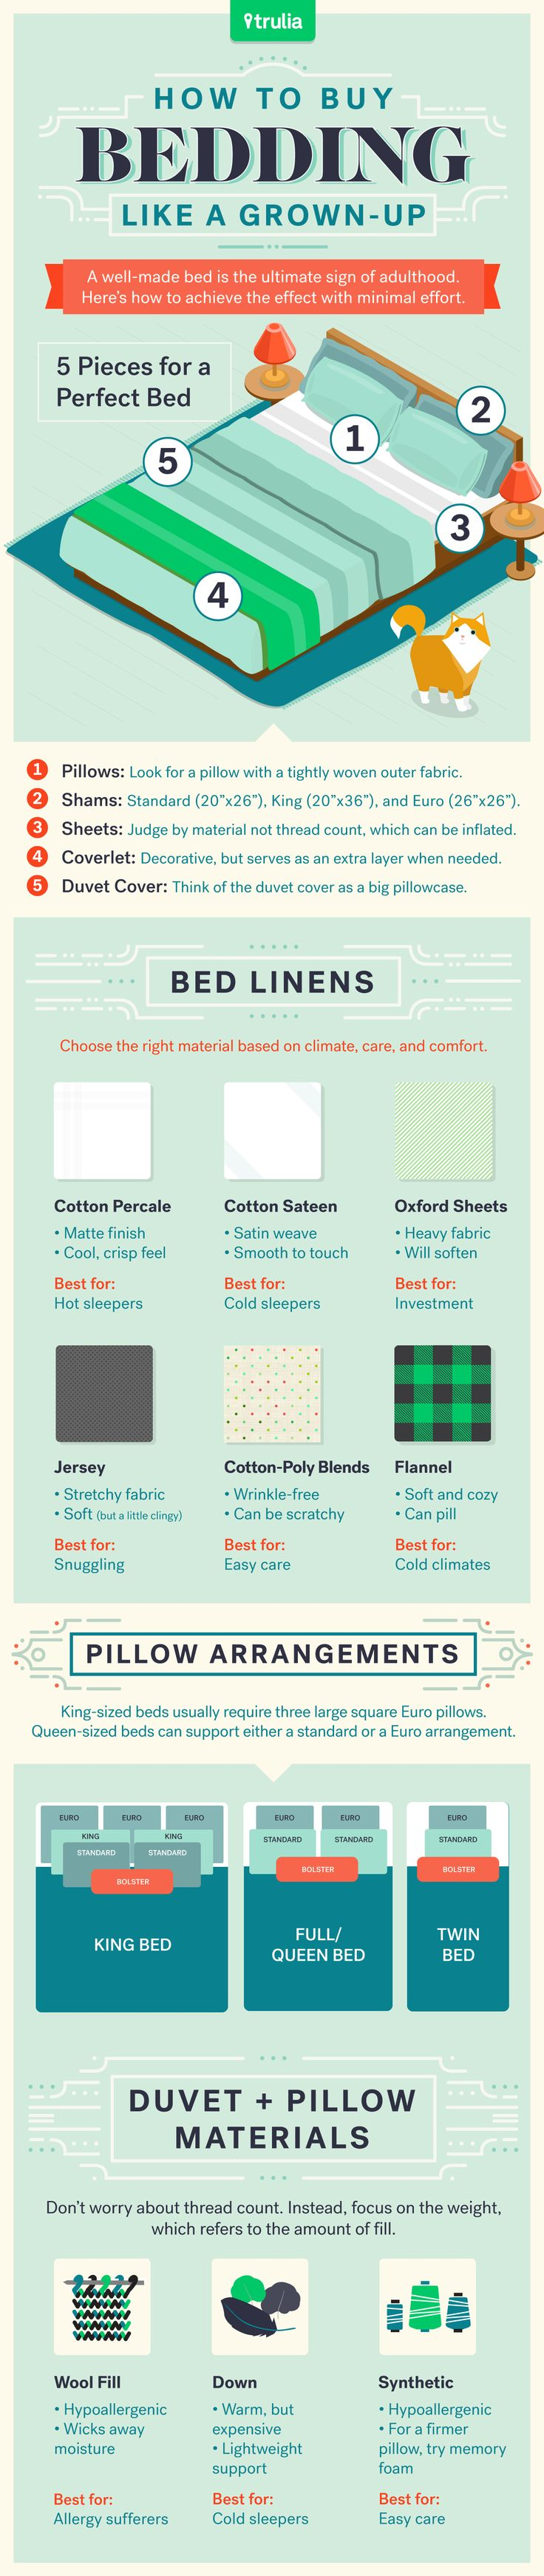 How To Buy Bedding Infographic